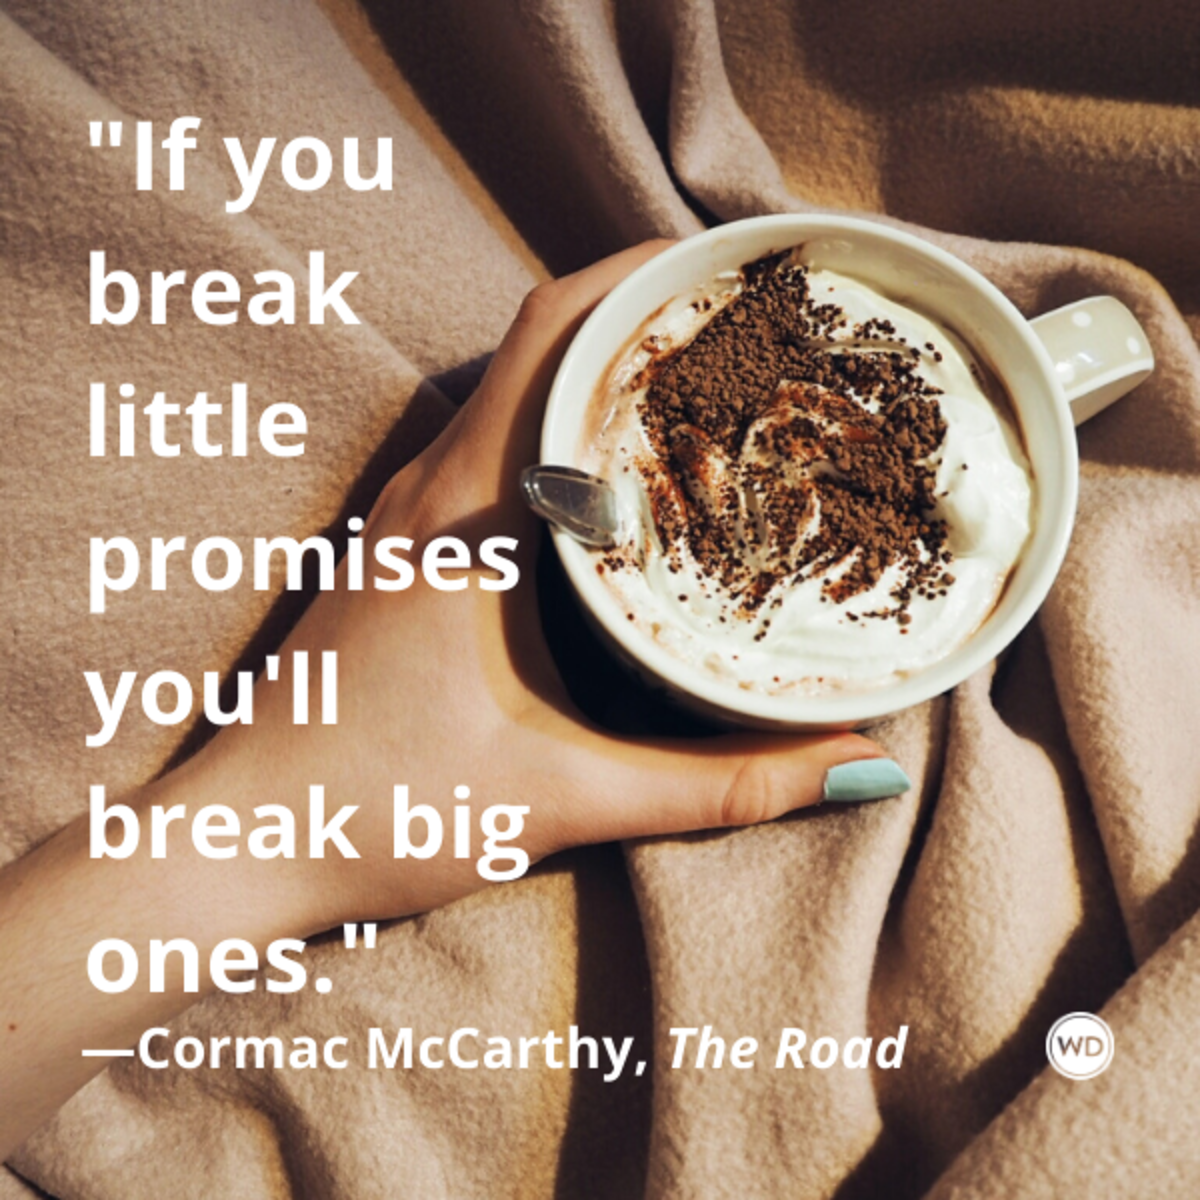 cormac_mccarthy_the_road_quotes_if_you_break_little_promises_youll_break_big_ones